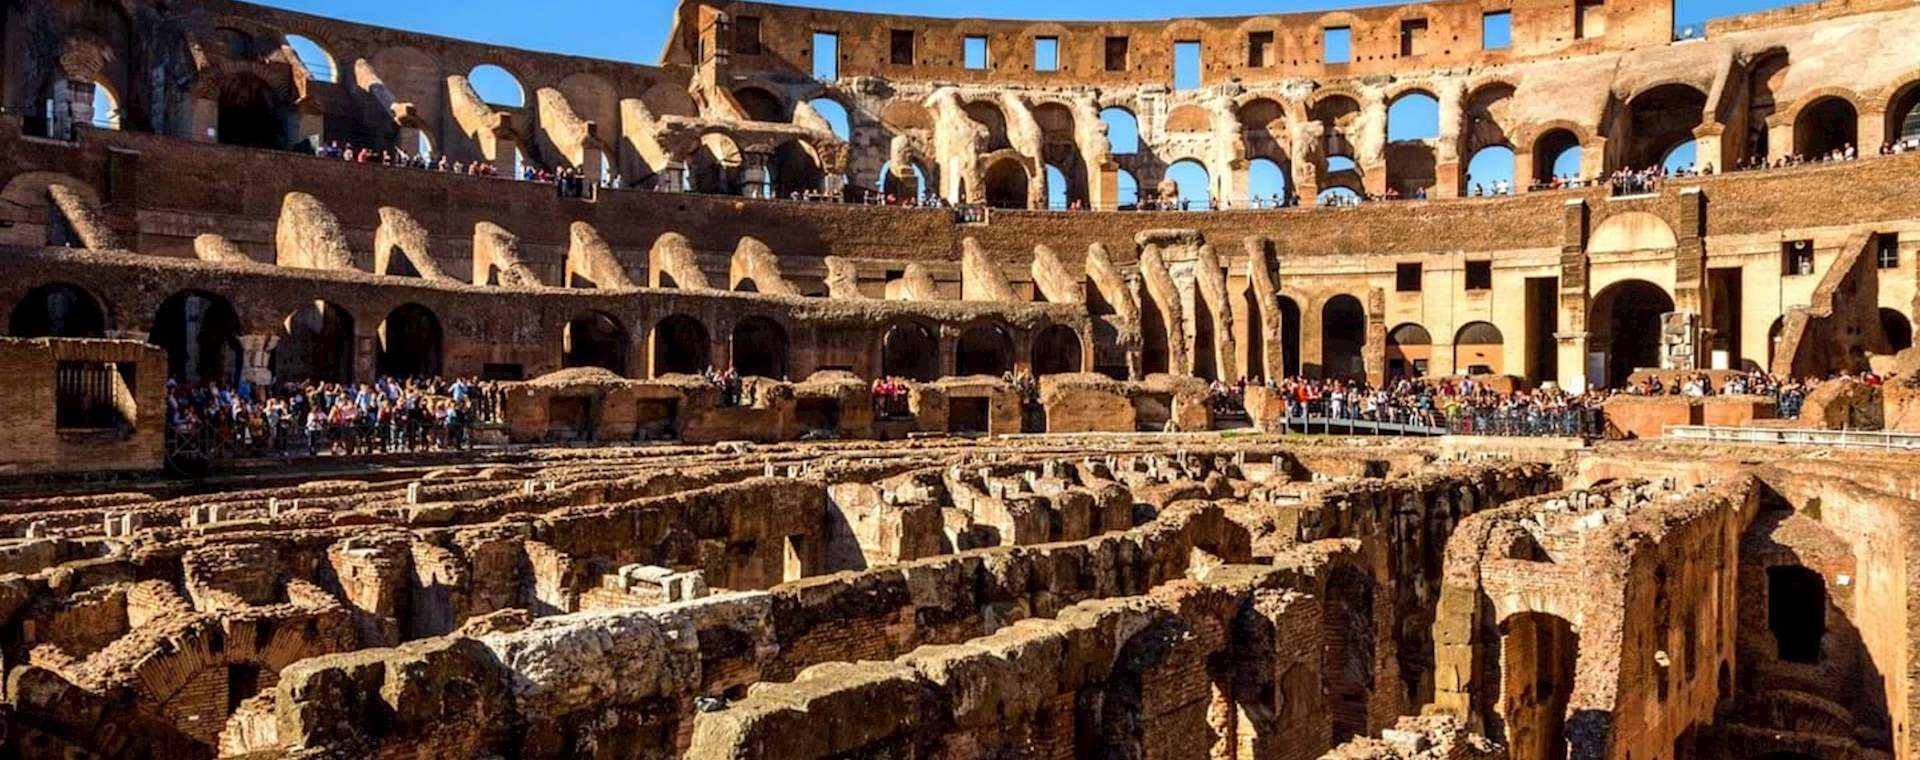 Colosseum Tour with Newly Opened Top-Level Access